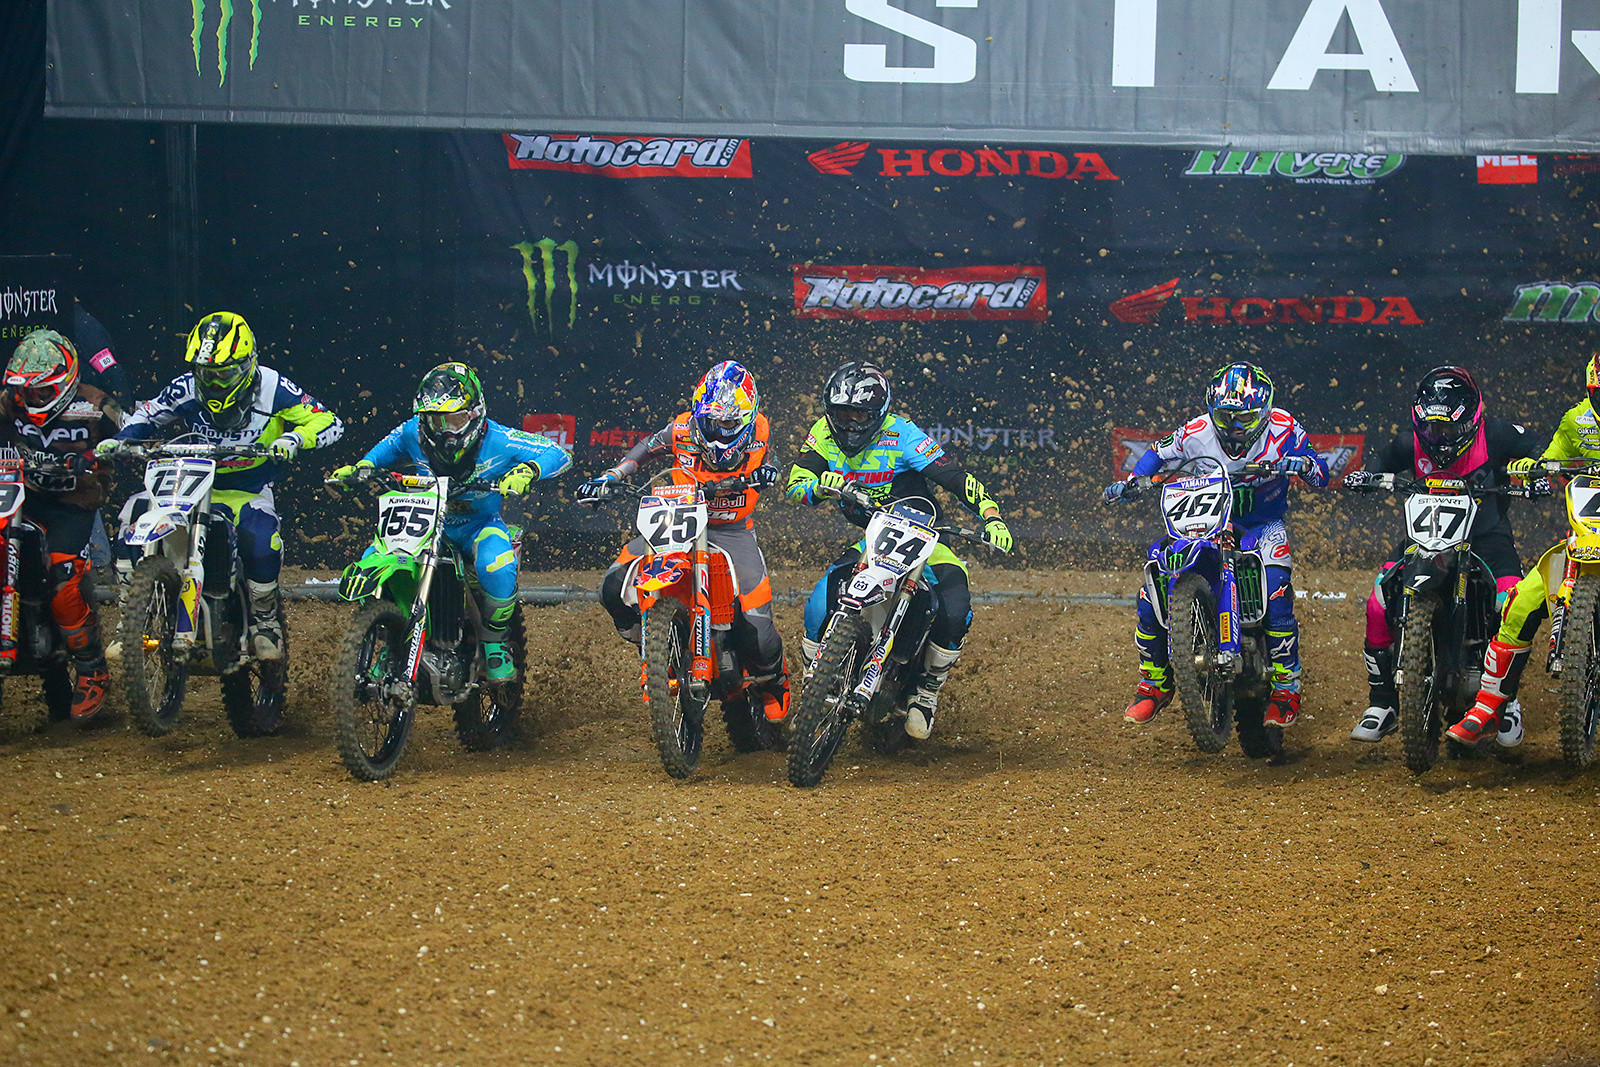 450 Heat 1 - Photo Gallery: Saturday at the Paris-Lille Supercross - Motocross Pictures - Vital MX